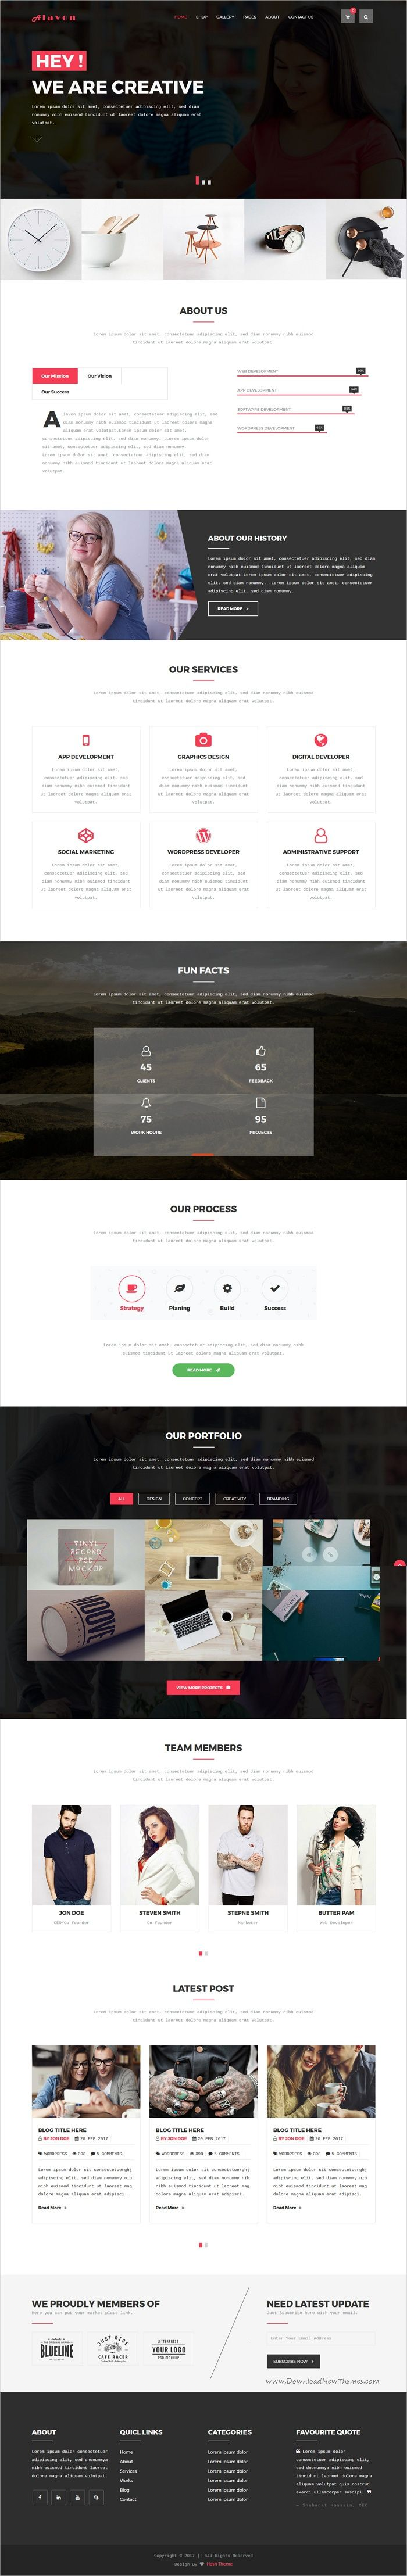 Alvon is a clean and modern design 7in1 responsive HTML5 #bootstrap template for creative business, #corporate agencies or #freelancers website download now➩ https://themeforest.net/item/alavon-creative-portfolio-html5-digital-agency-template/19561582?ref=Datasata